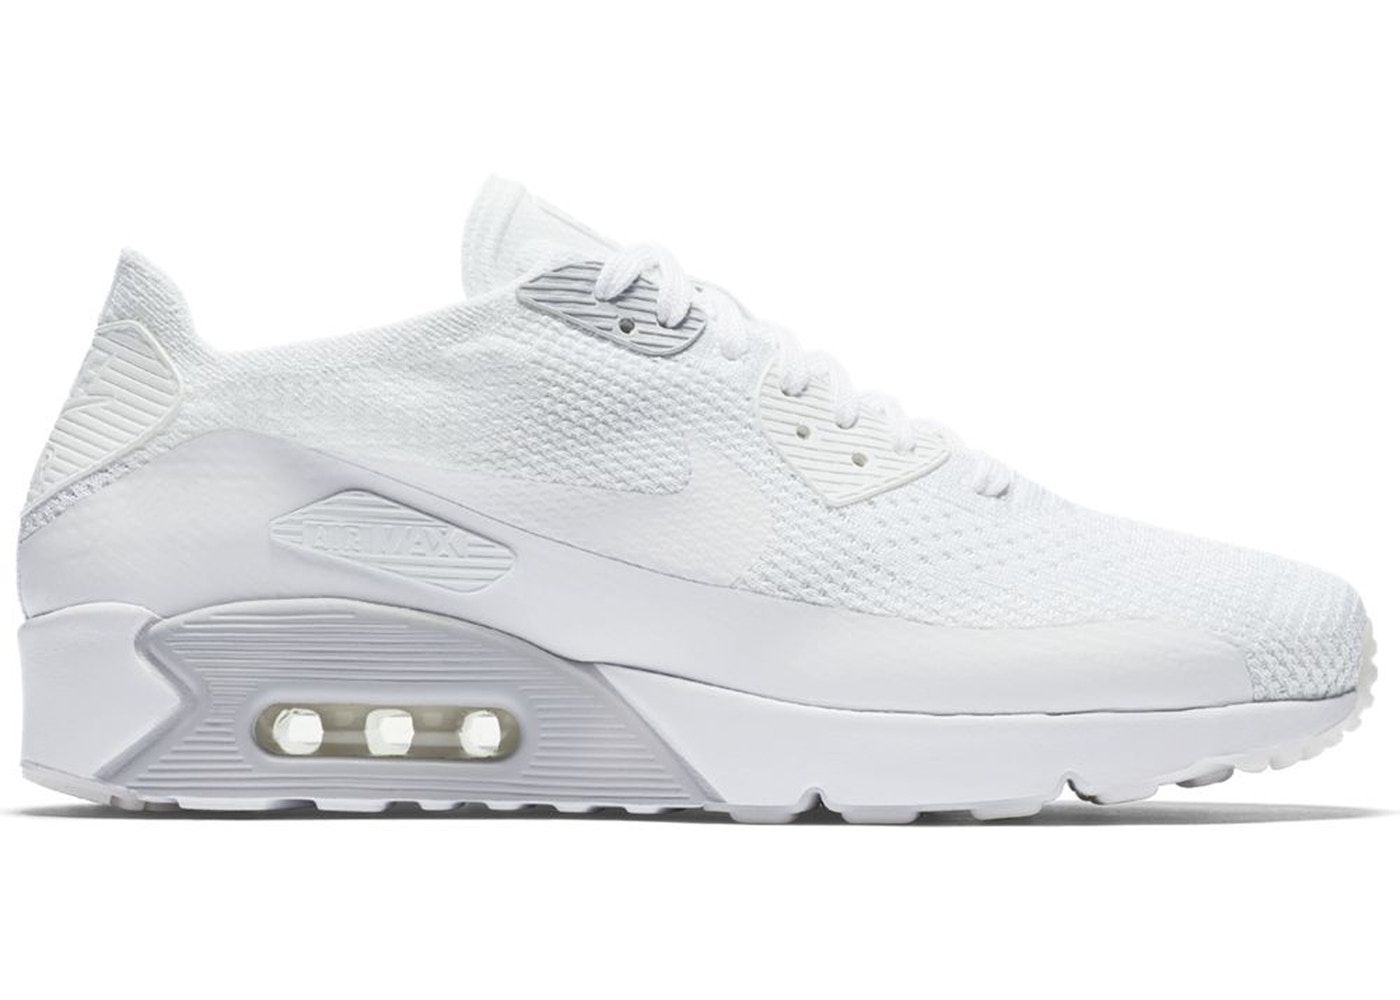 buy popular 721b3 bd643 Check out the Air Max 90 Ultra 2.0 Flyknit White available on StockX